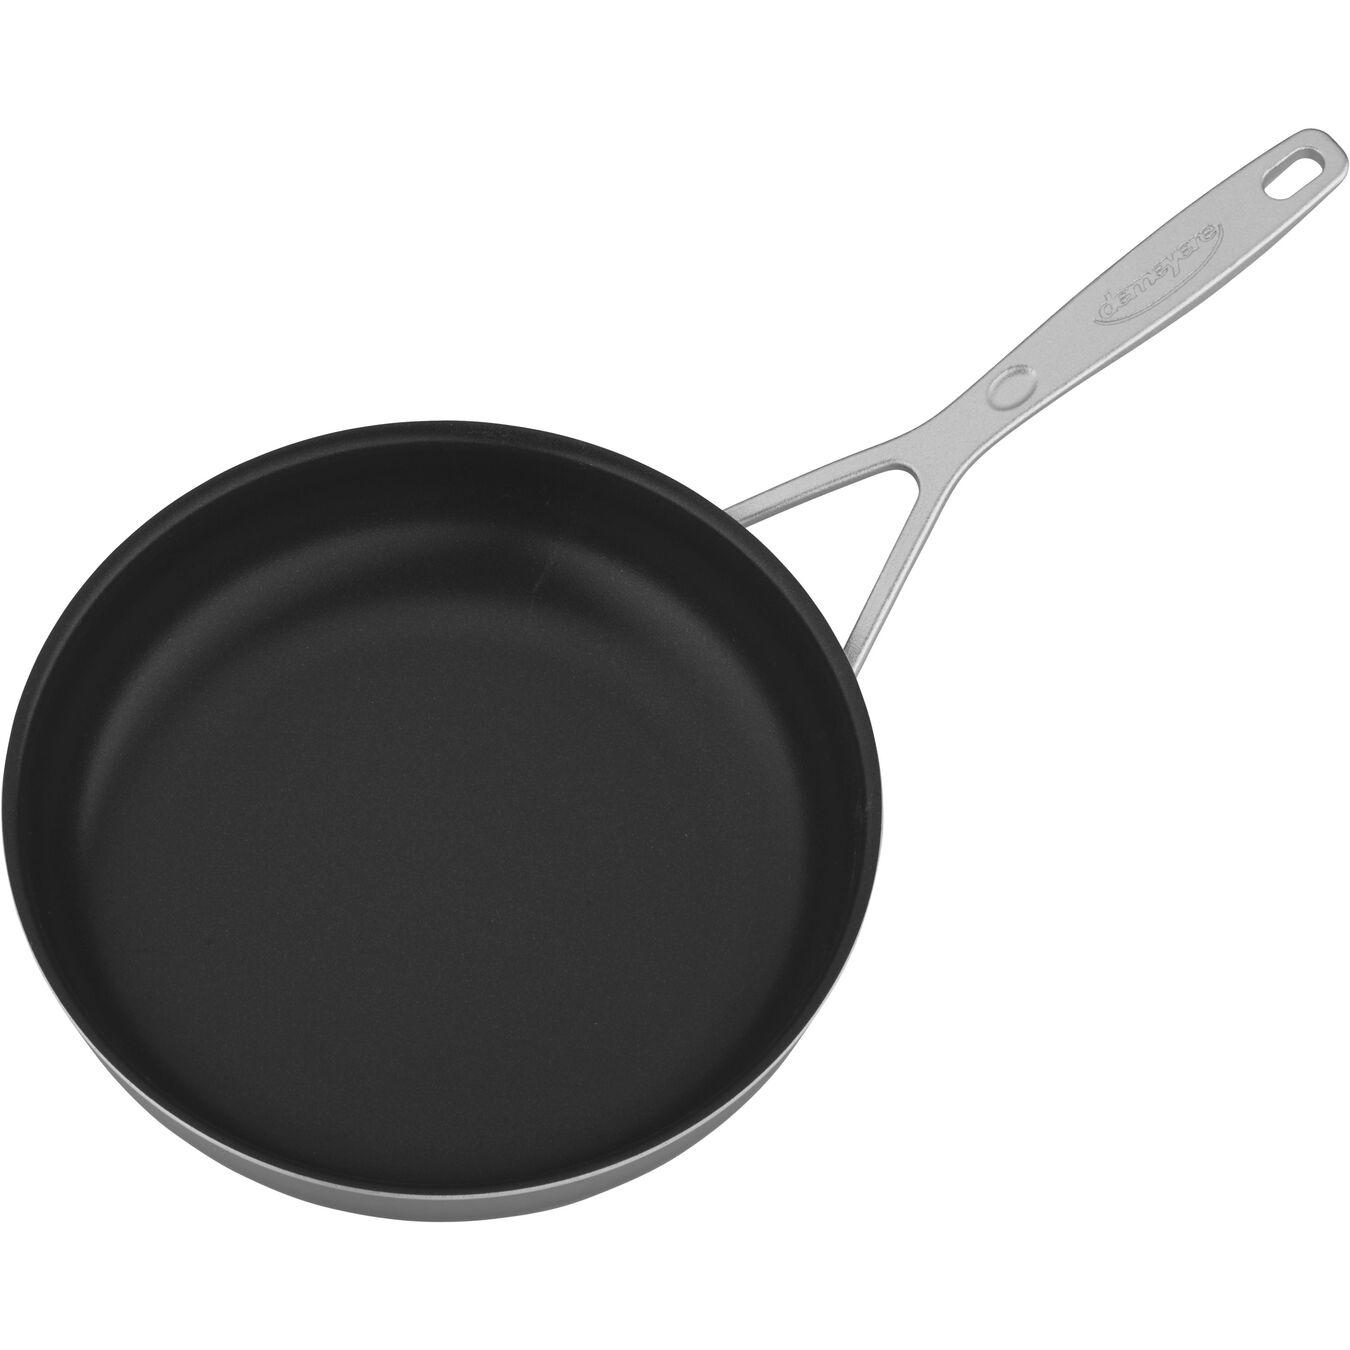 9.5-inch, 18/10 Stainless Steel, Non-stick, PTFE, Frying pan,,large 2